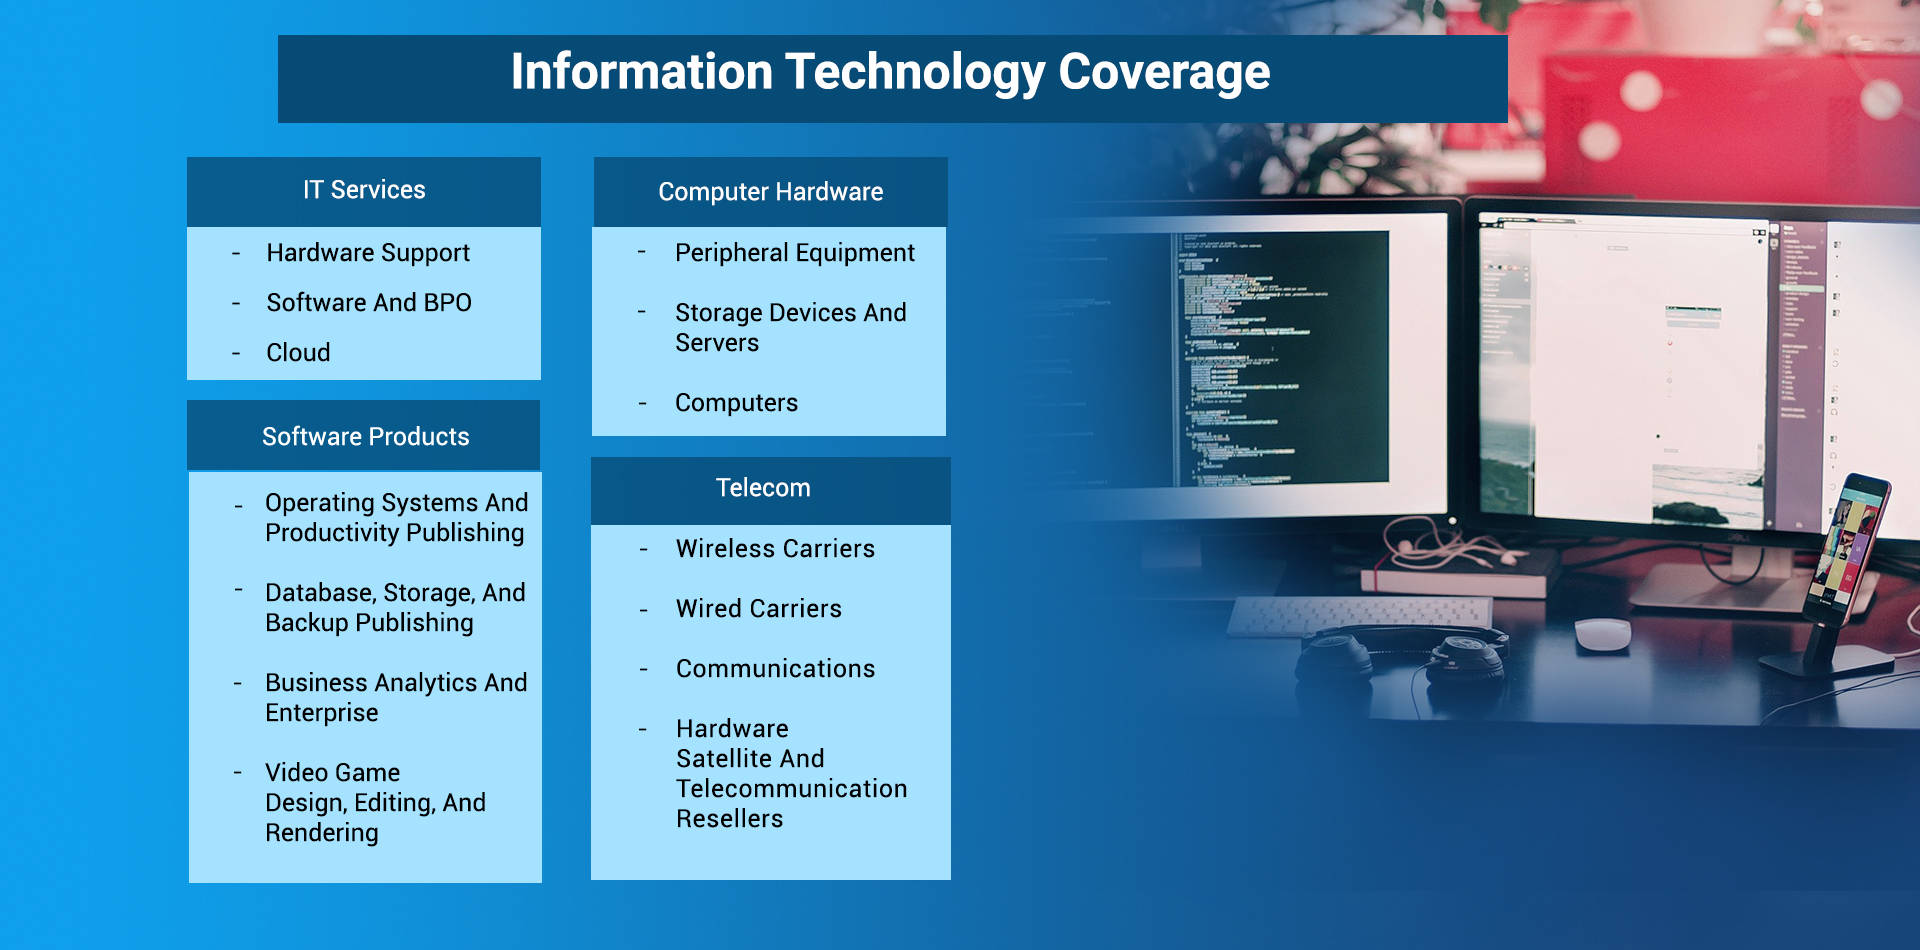 Information Technology Coverage